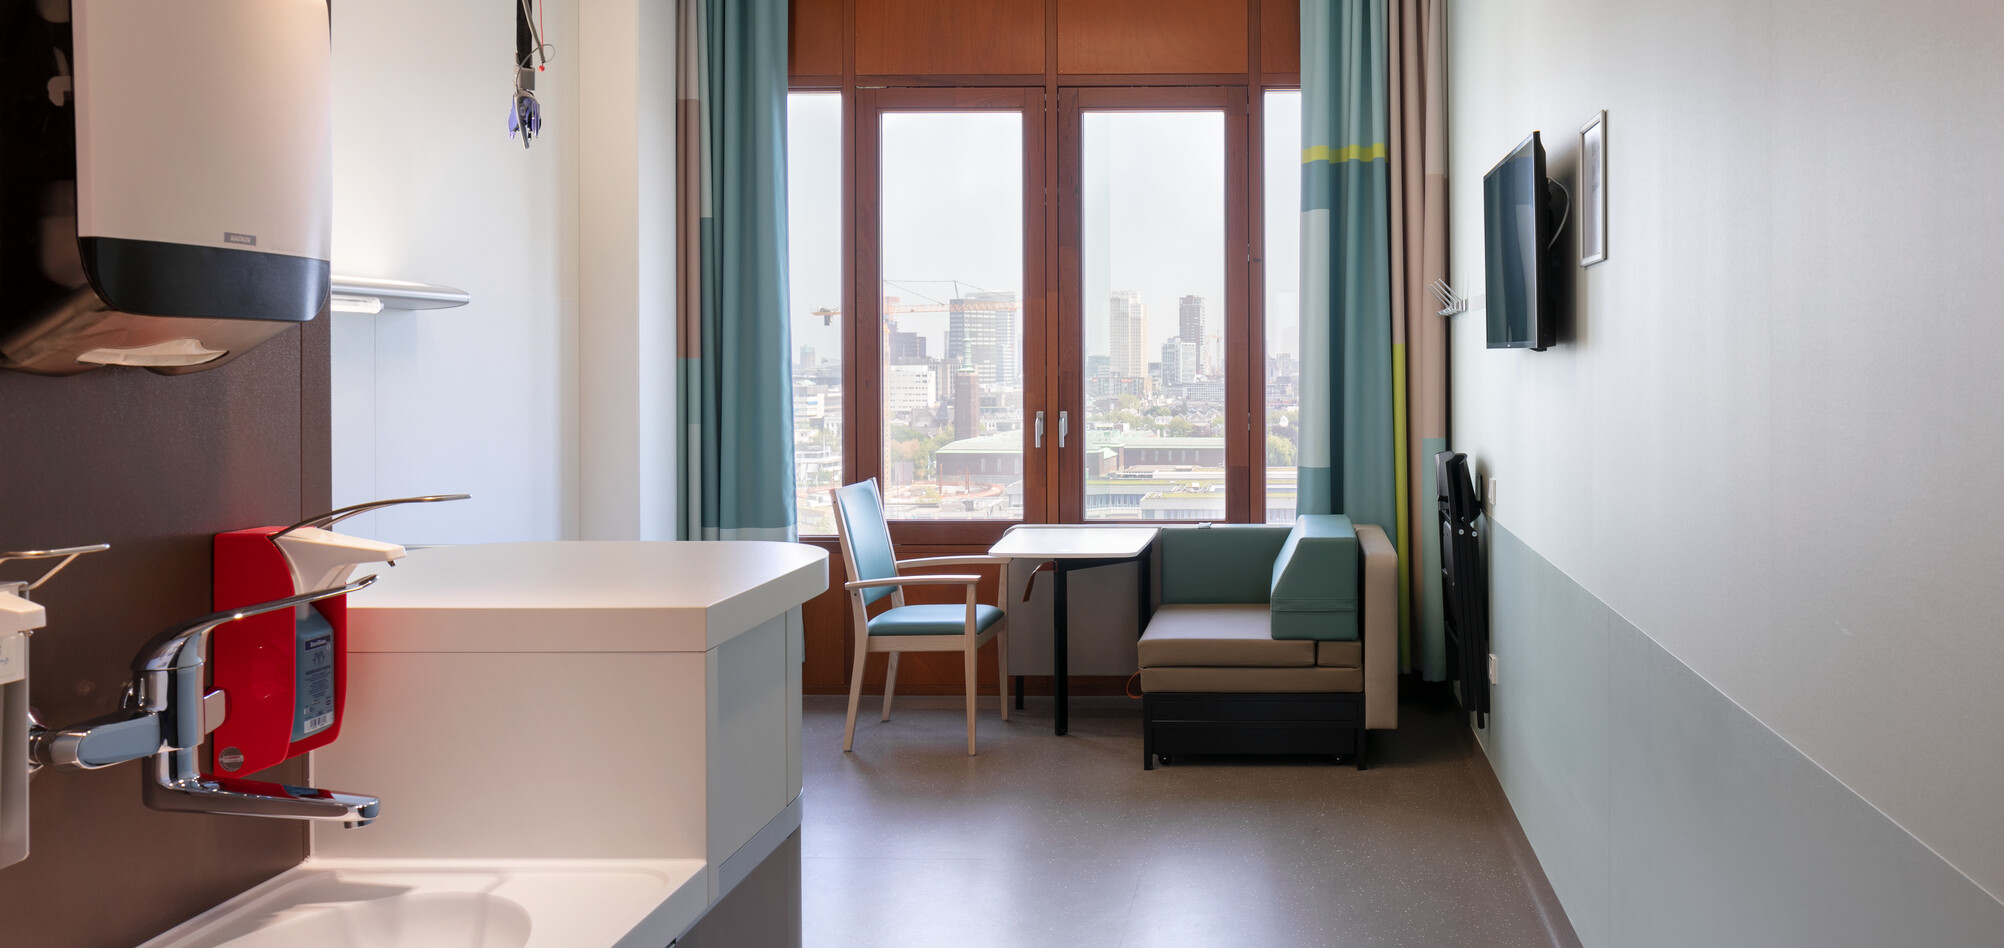 Royal Ahrend healthcare project Erasmus MC in Rotterdam 28